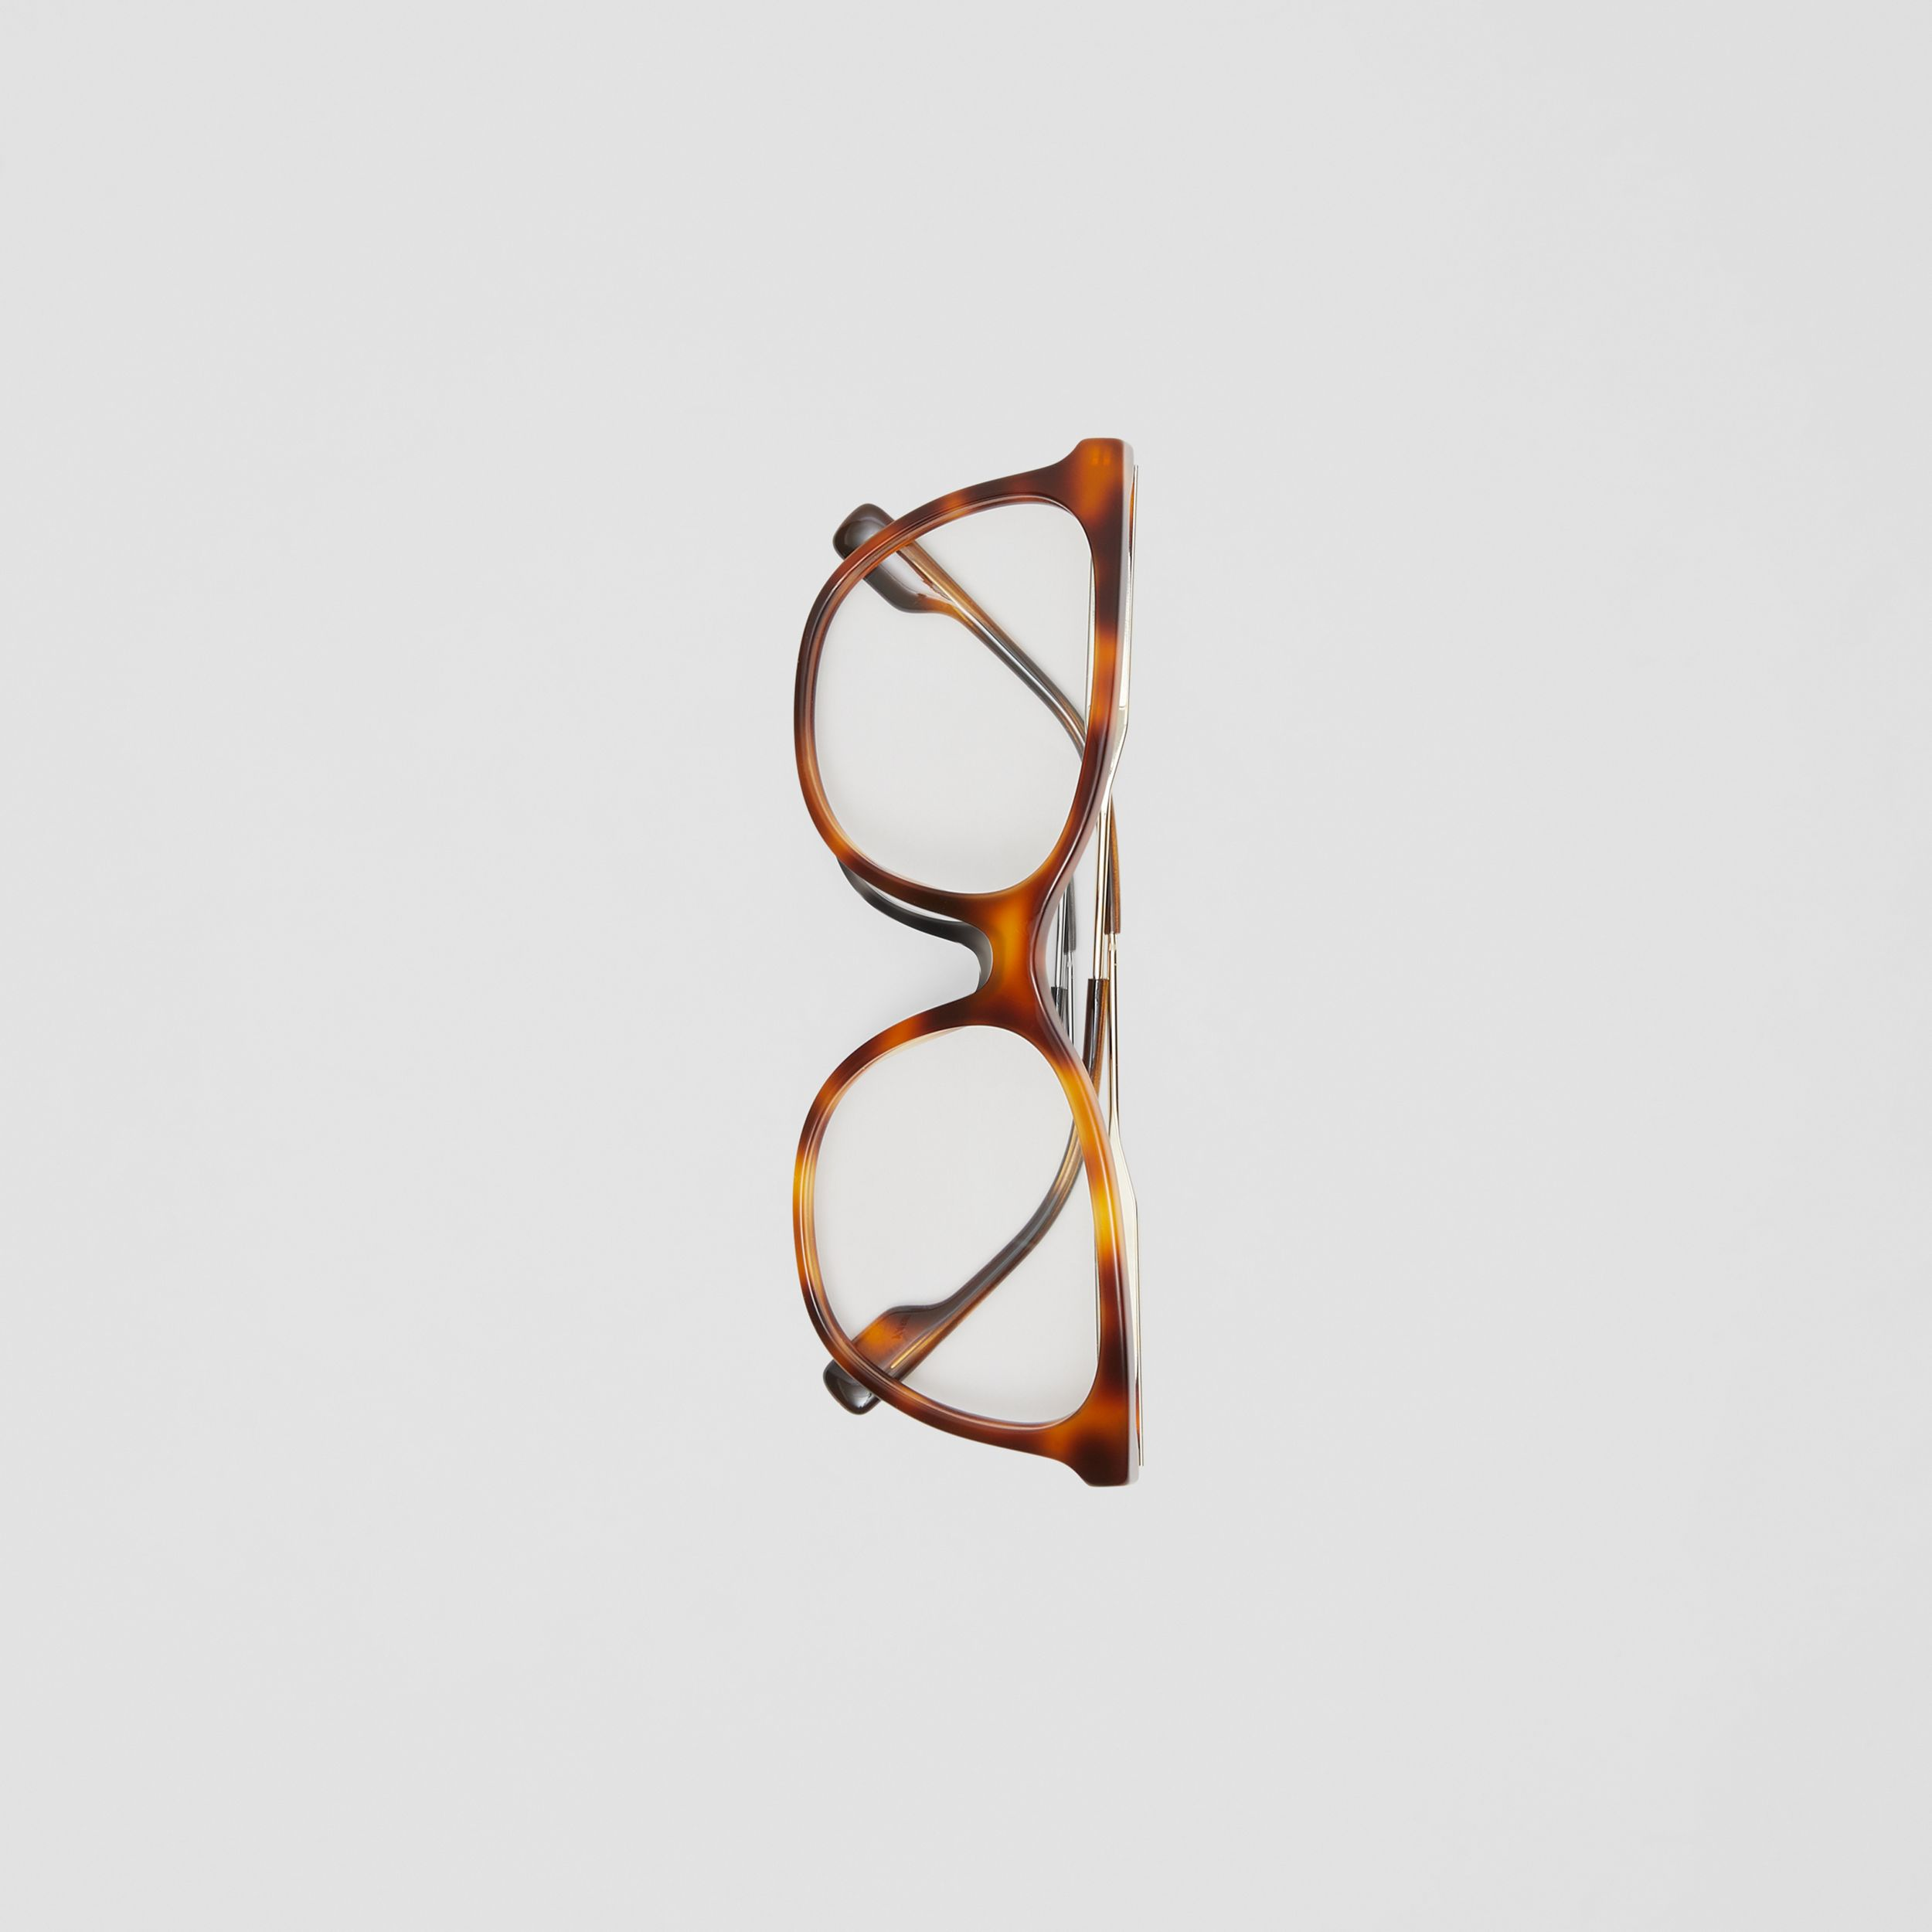 Cat-eye Optical Frames in Dark Amber Tortoiseshell - Women | Burberry - 4